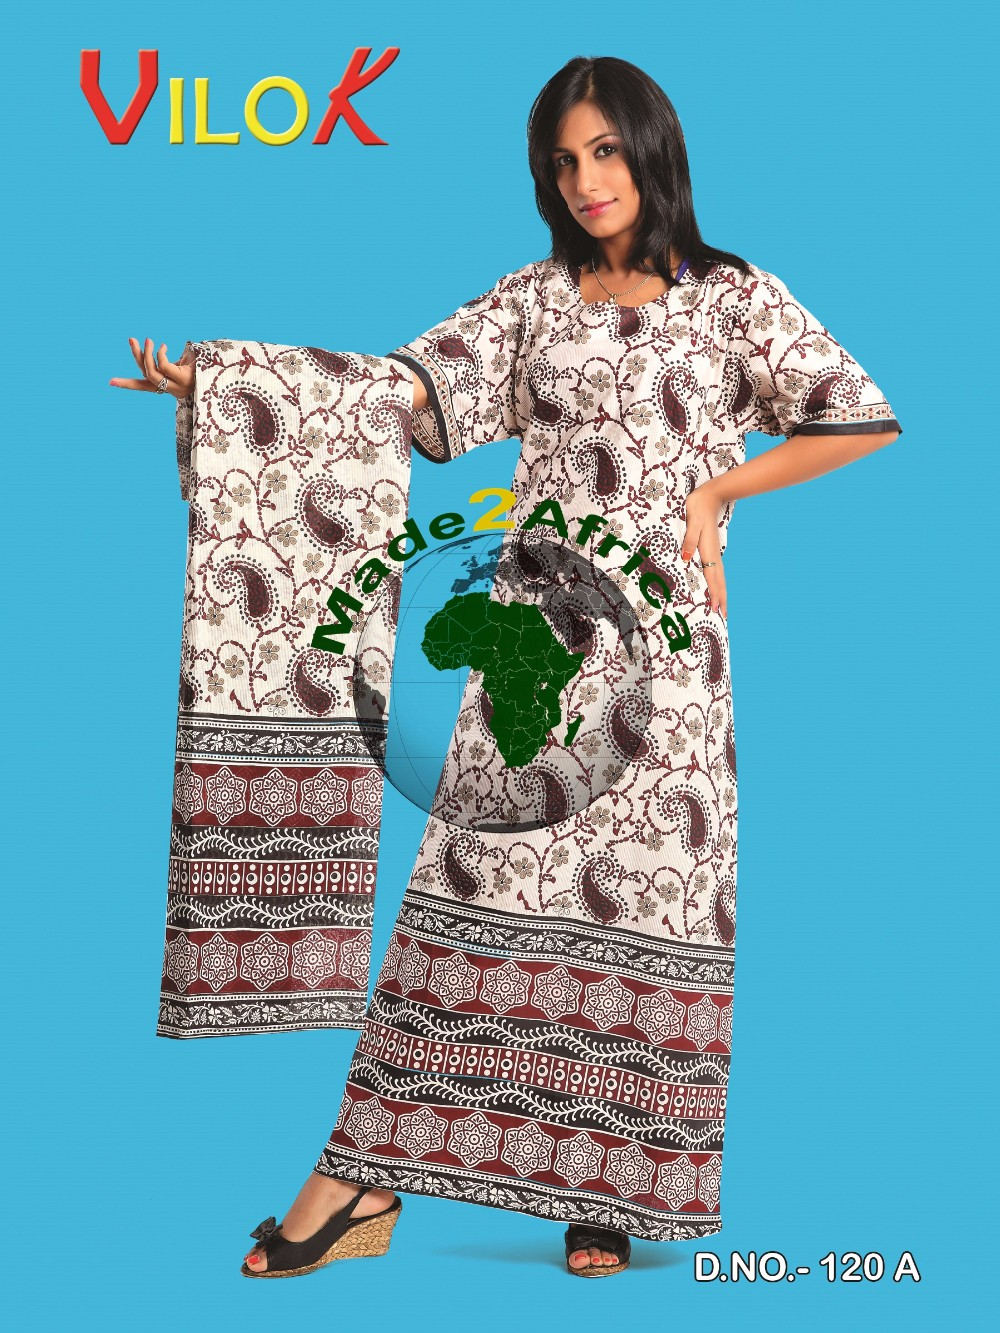 Wholesale Suppliers In Tanzania 2016 2017 Tanzania Maxi Dresses Wholesale Maxi Dresses Maxi With Dupatta India Indian Maxi Suppliers Buy New African Dresses African Women